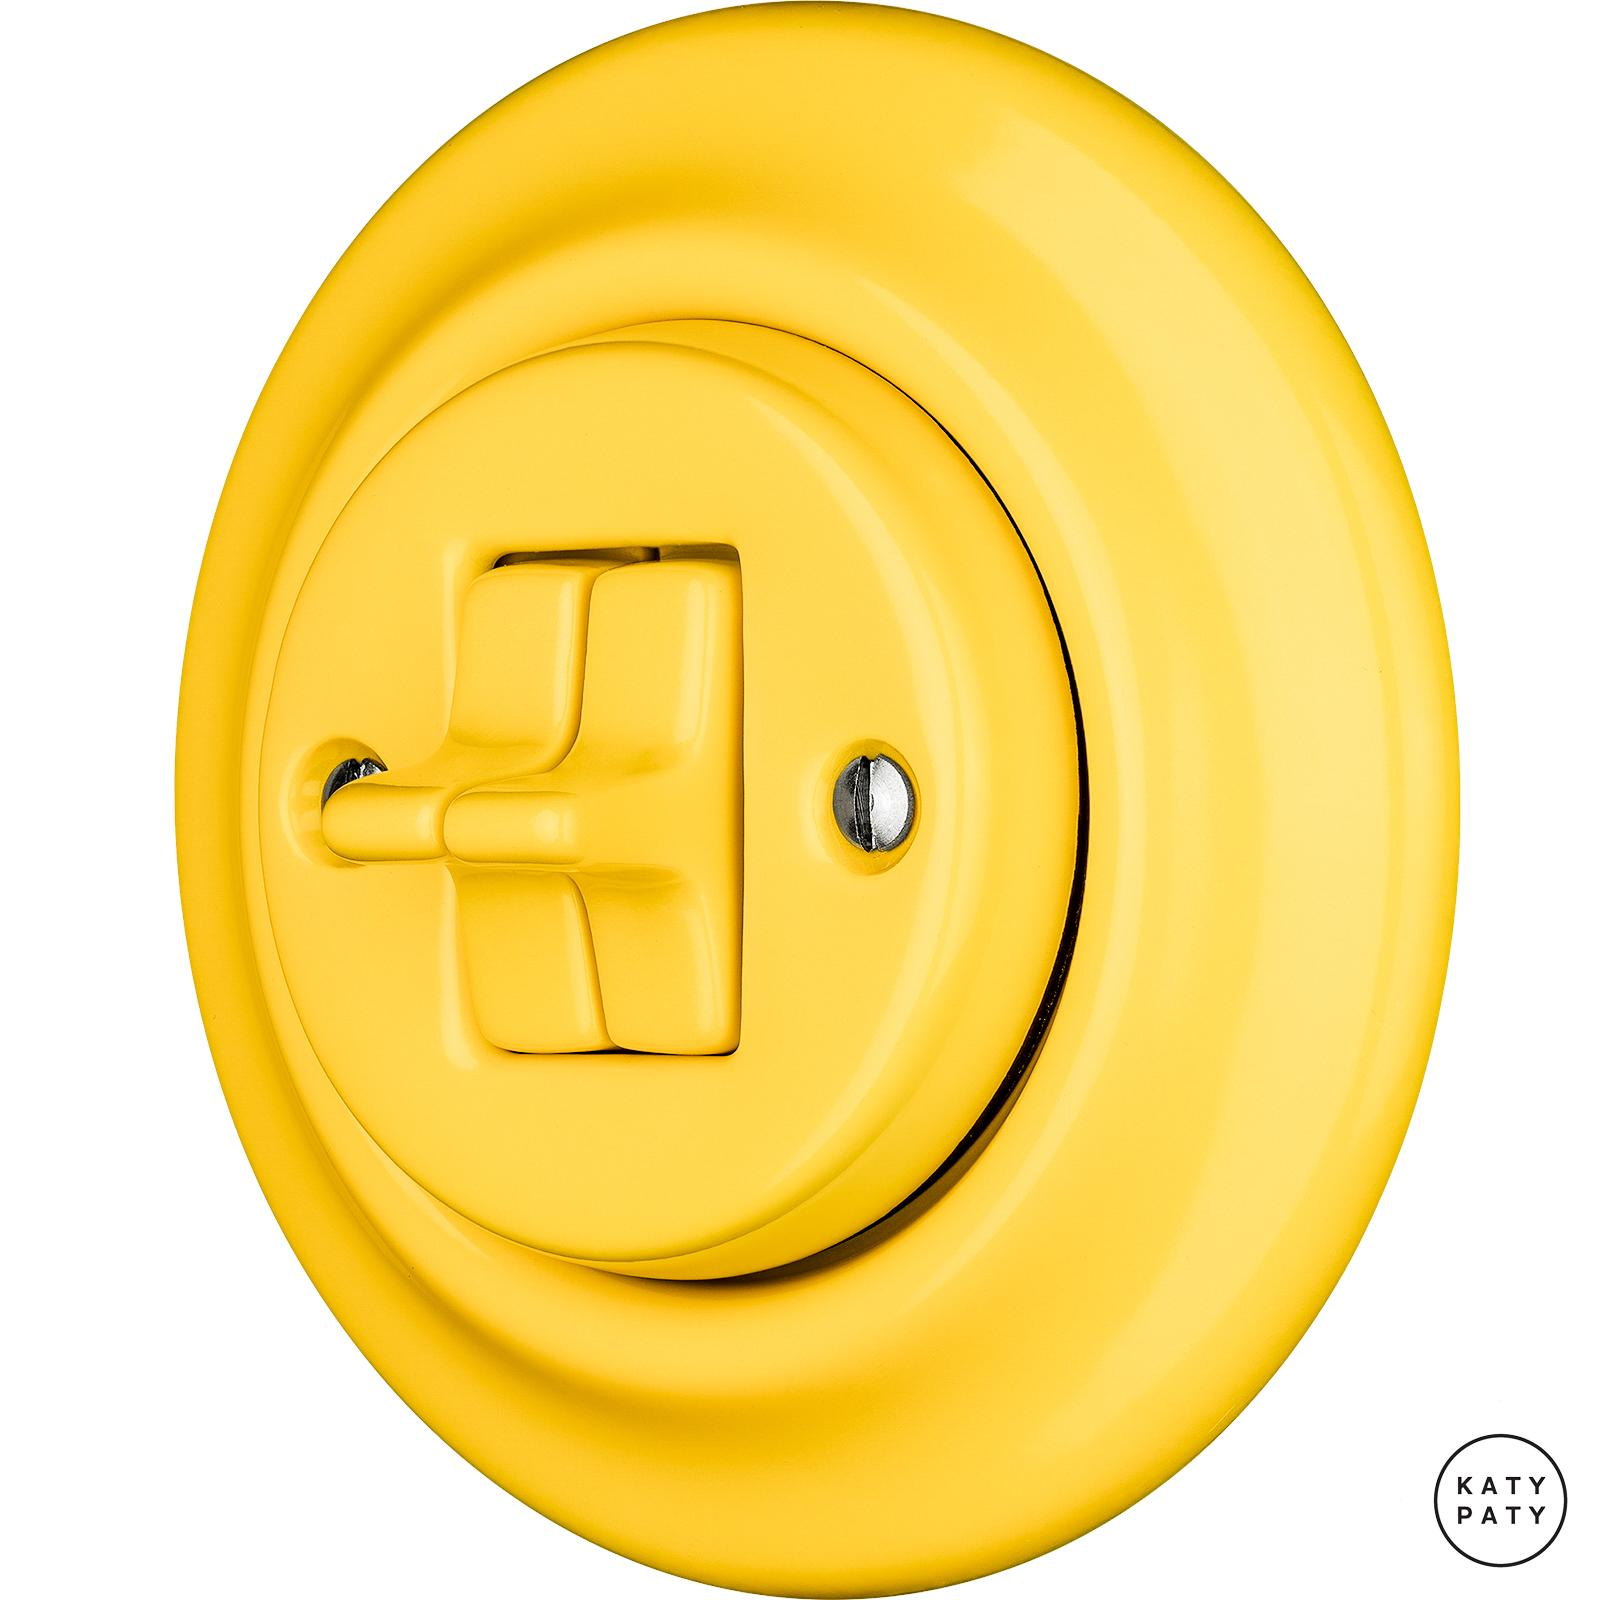 Porcelain toggle switches - a double gang ()  - NITOR LUTEA | Katy Paty